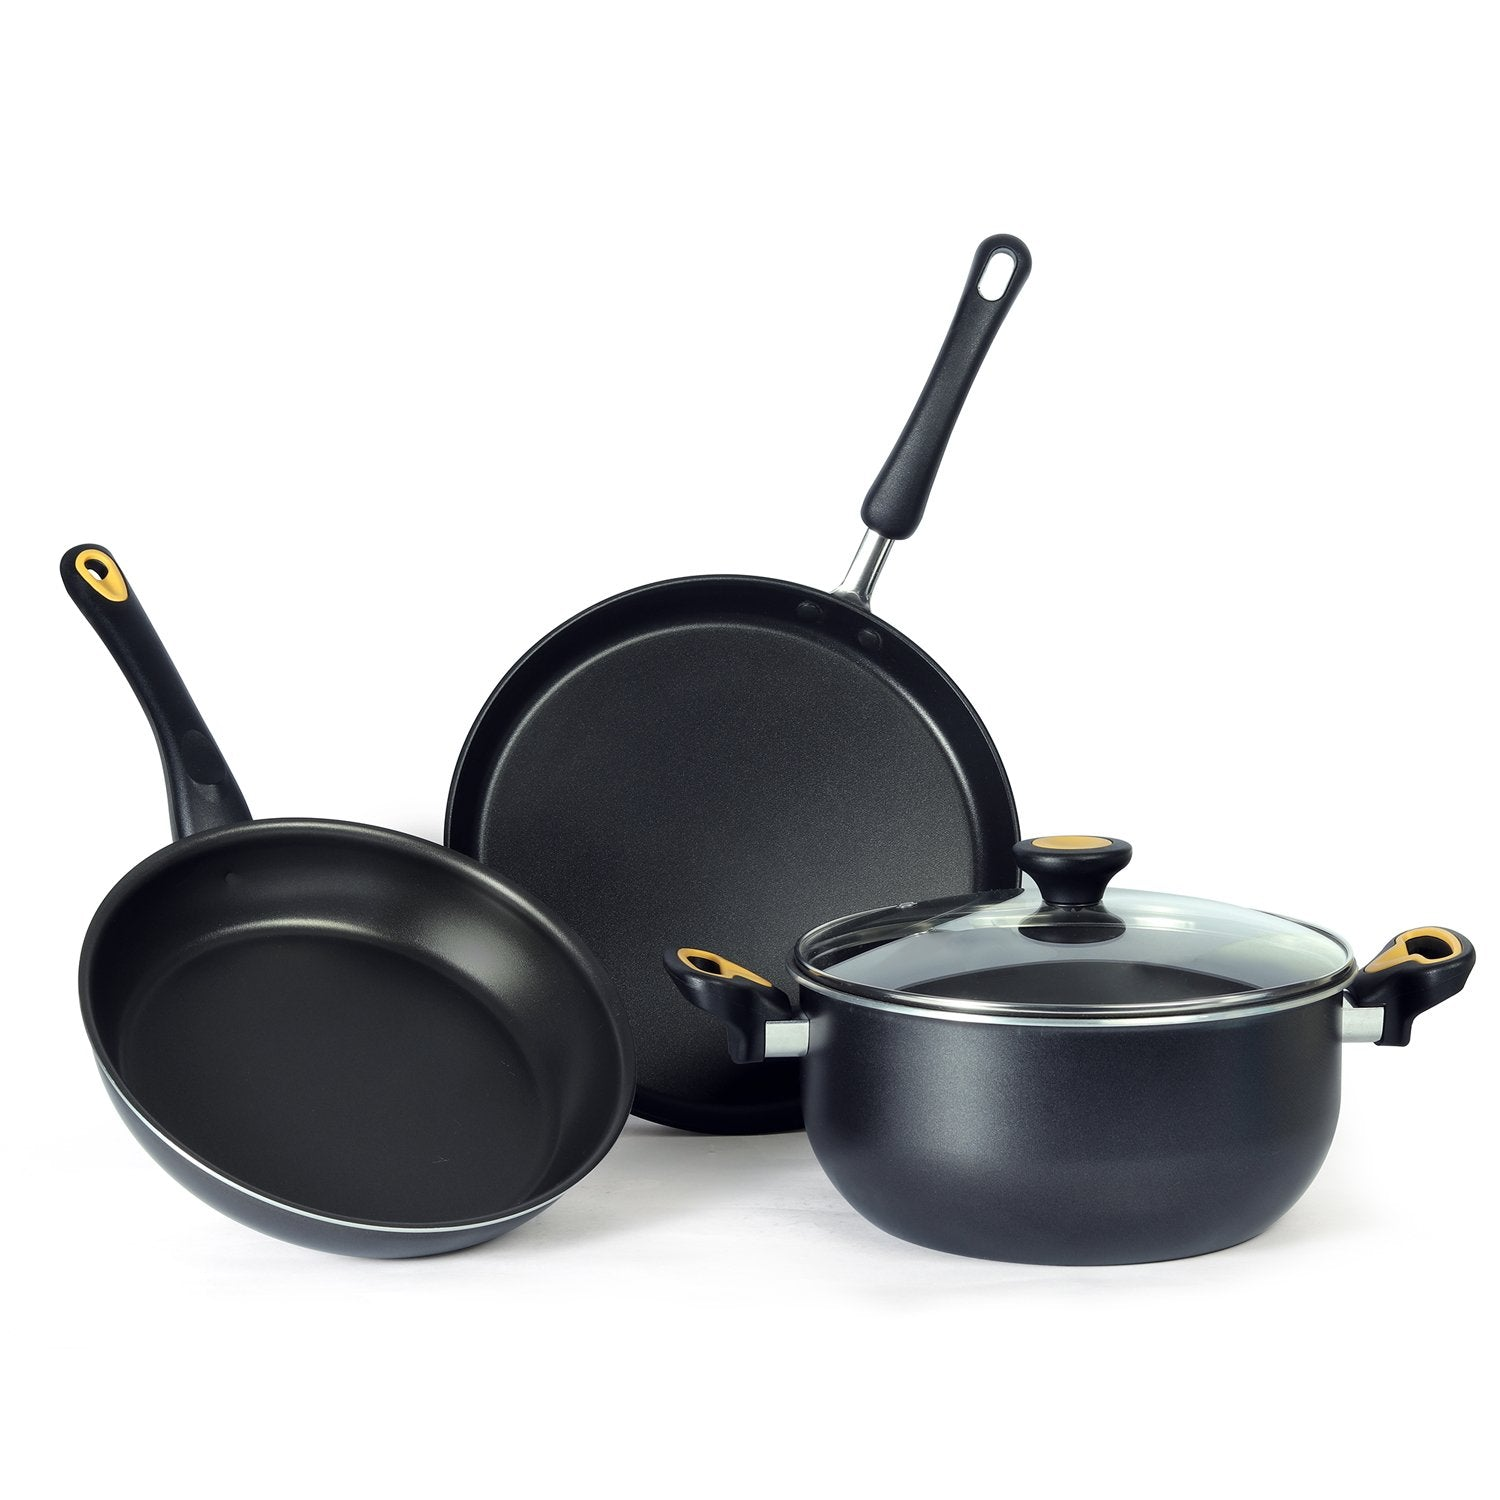 Meyer Non-Stick 4pcs Cookware Set (24cm Casserole + 24cm Frypan + 28cm Flat Tawa) - Pots and Pans